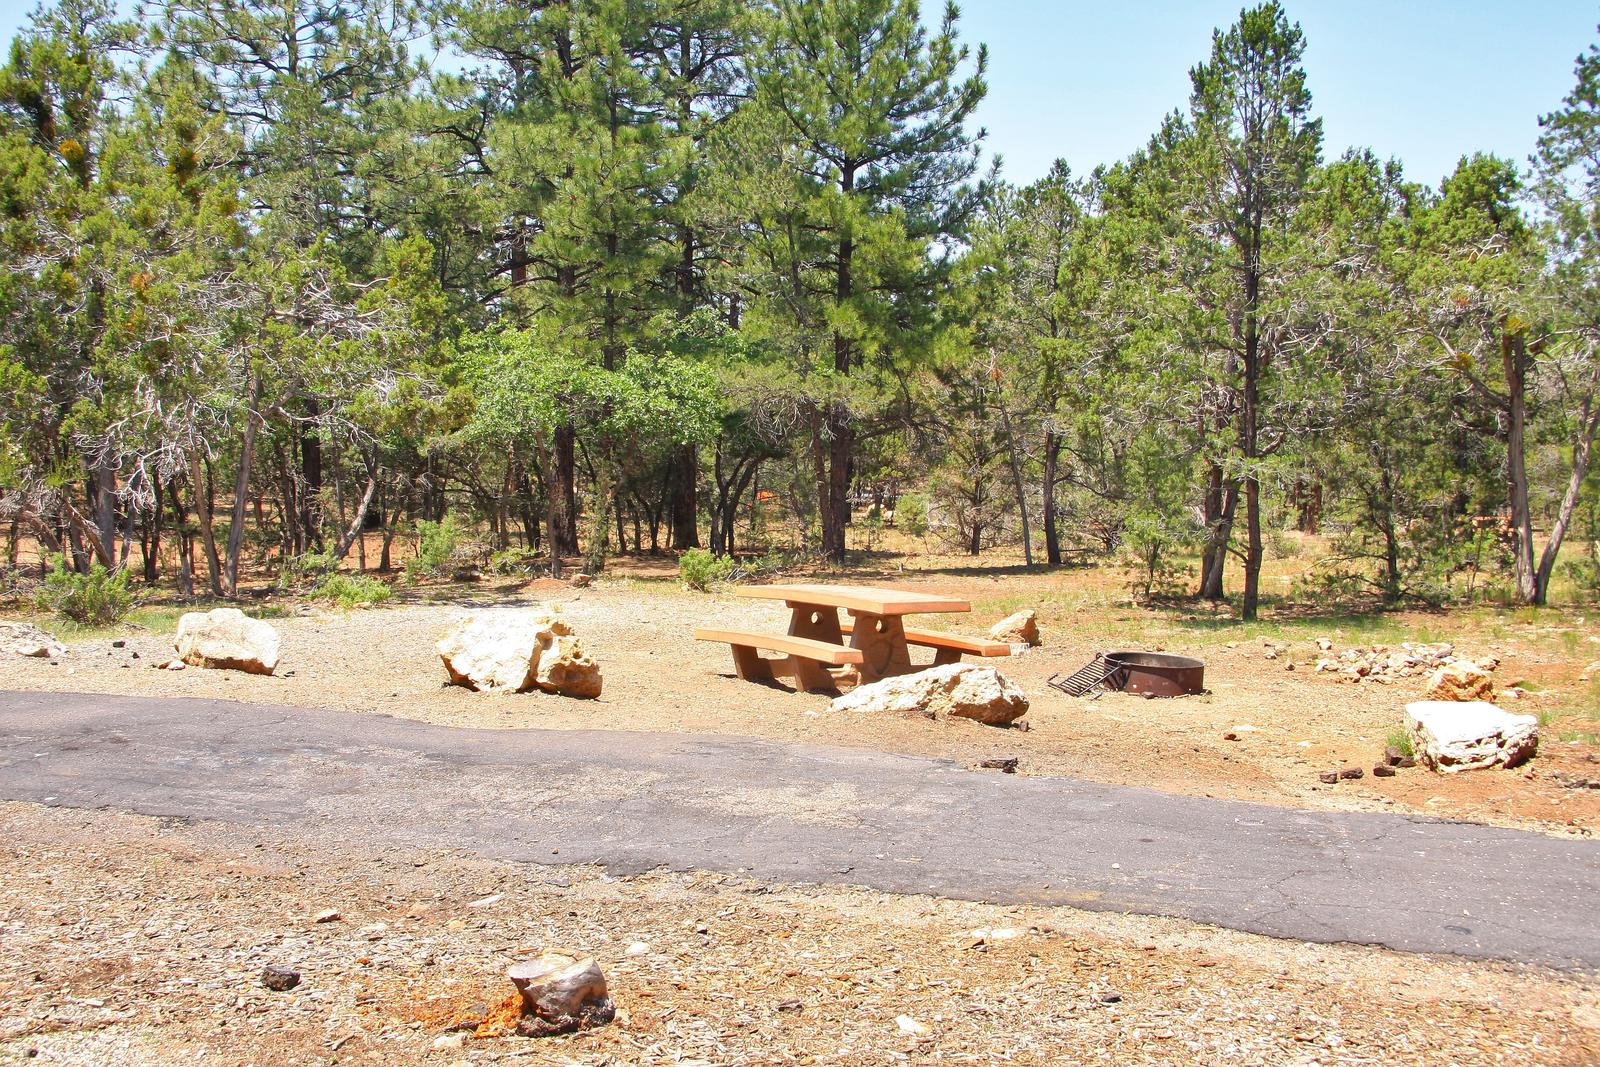 Picnic table, fire pit, and parking spot, Mather CampgroundPicnic table, fire pit, and parking spot for Juniper Loop 110, Mather Campground